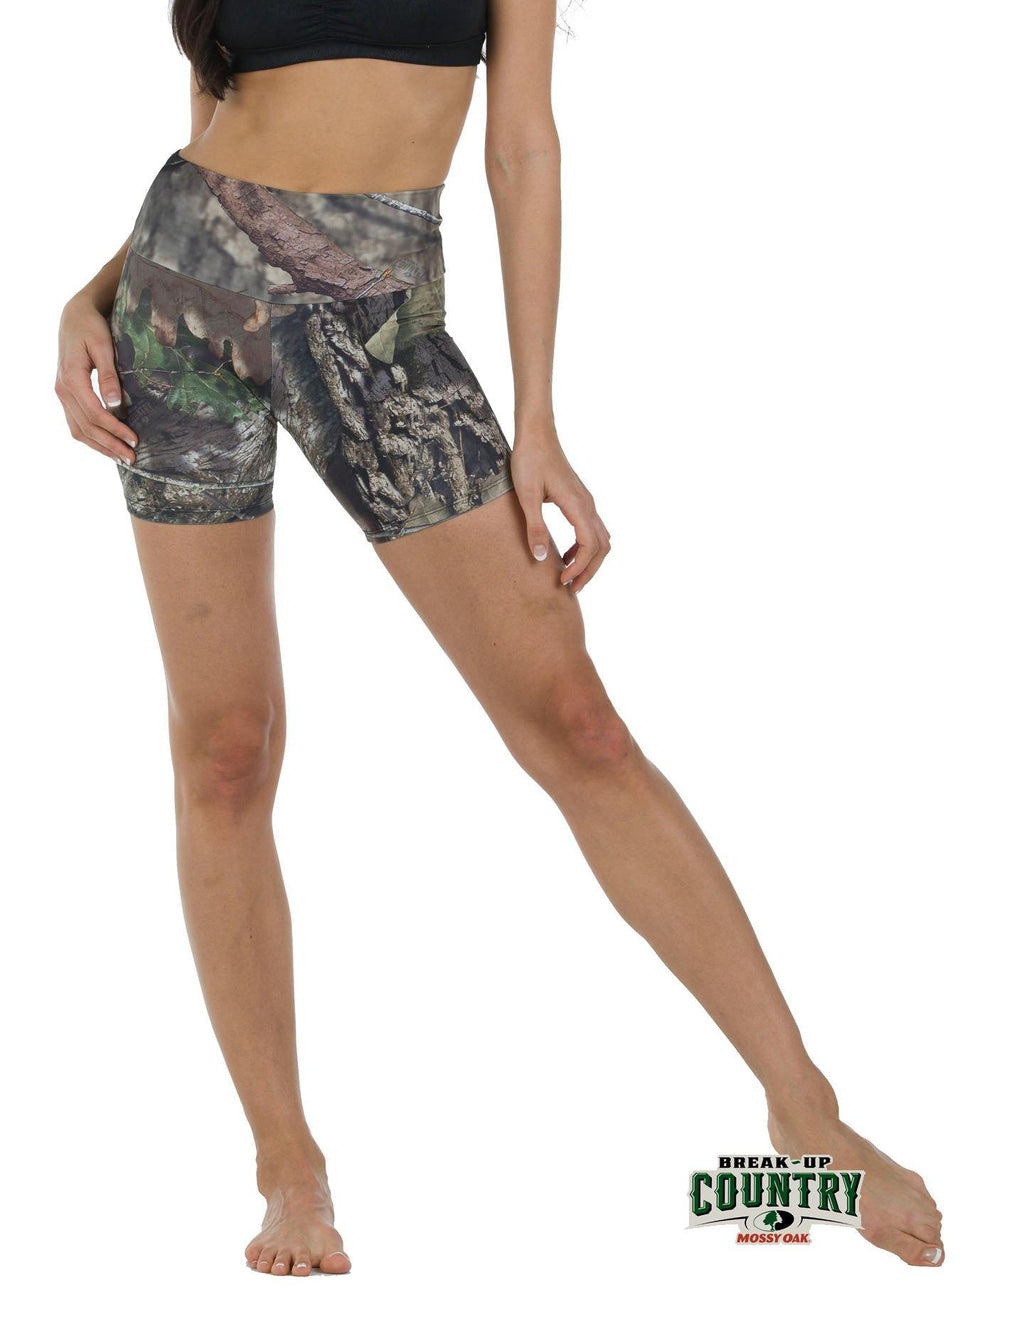 Apsara Shorts High Waist, Mossy Oak Break-Up Country